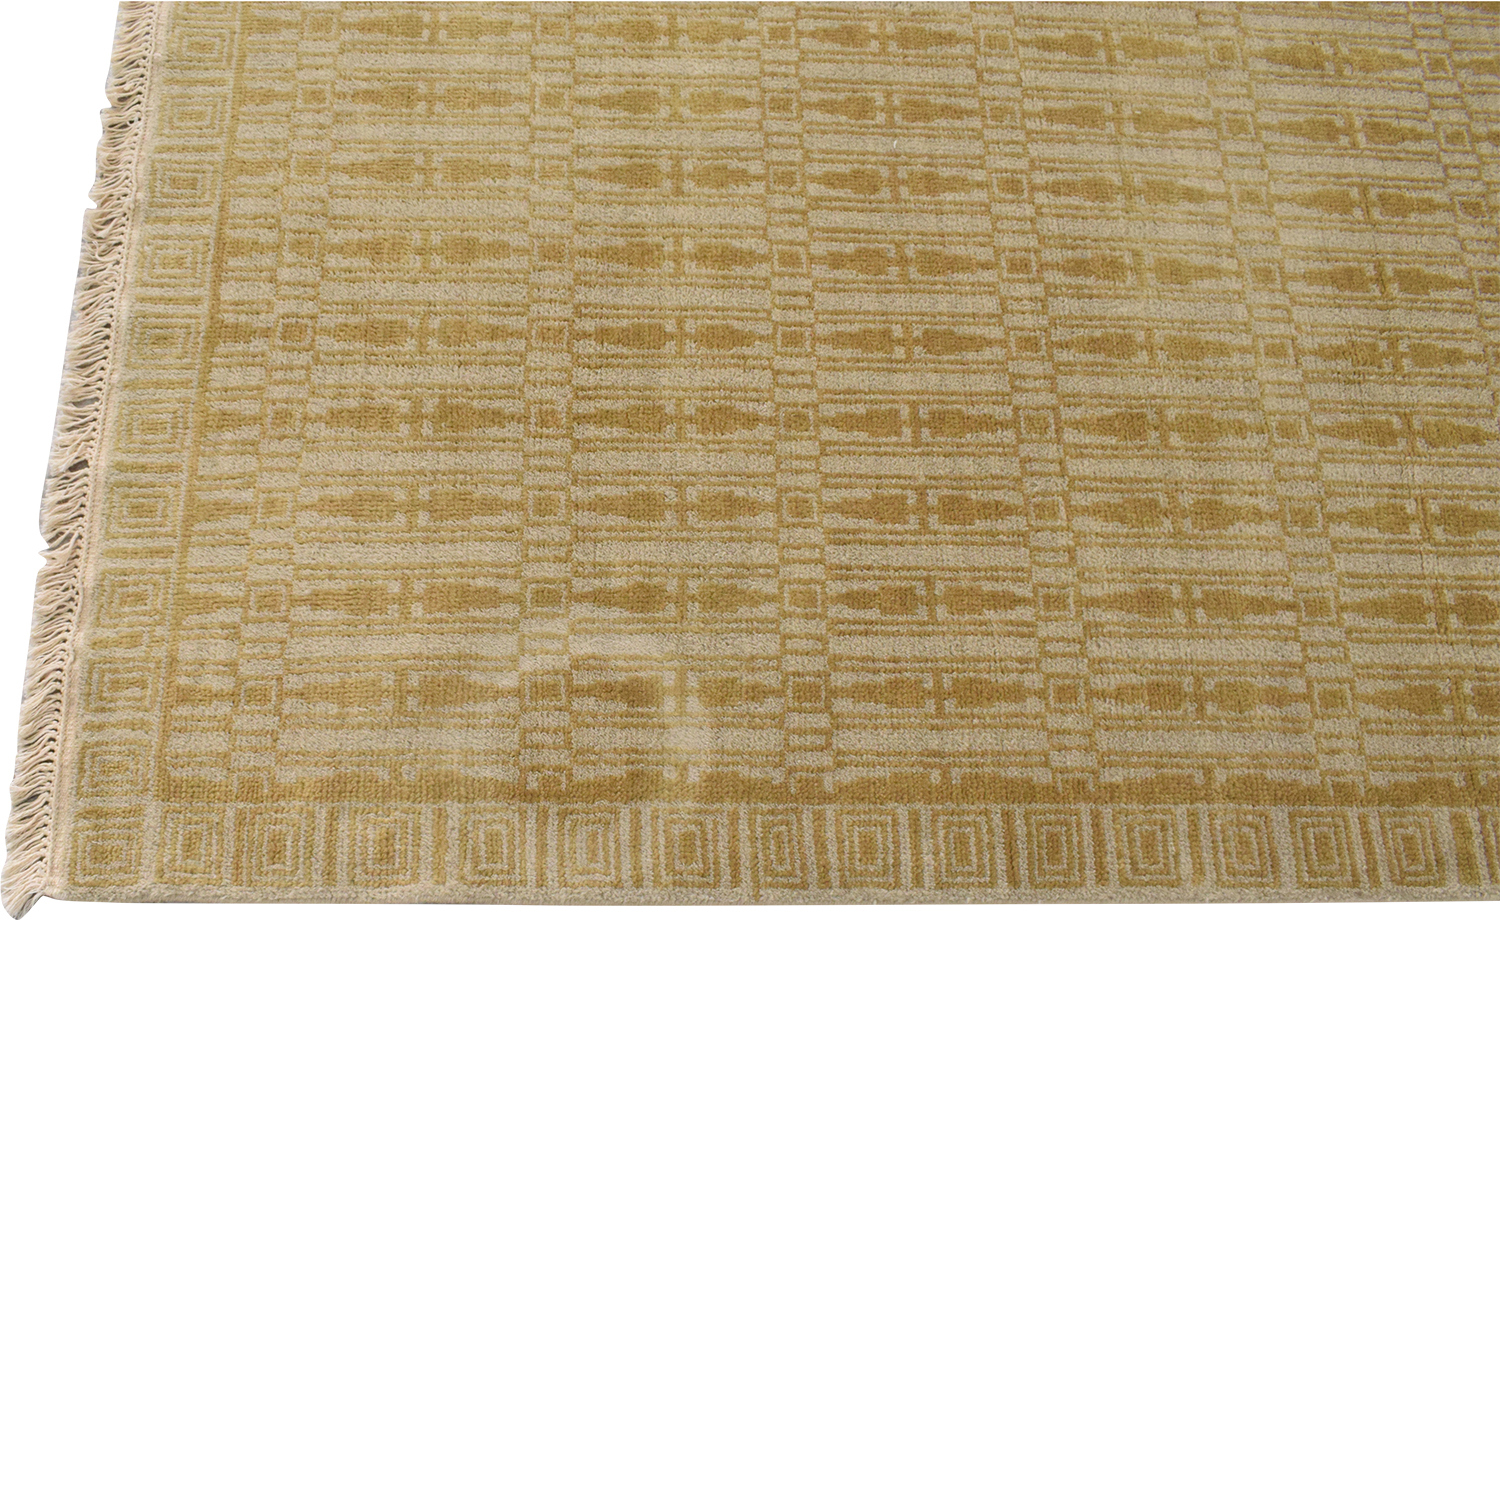 shop Room & Board Room & Board Tulum Hand Knotted Rug online